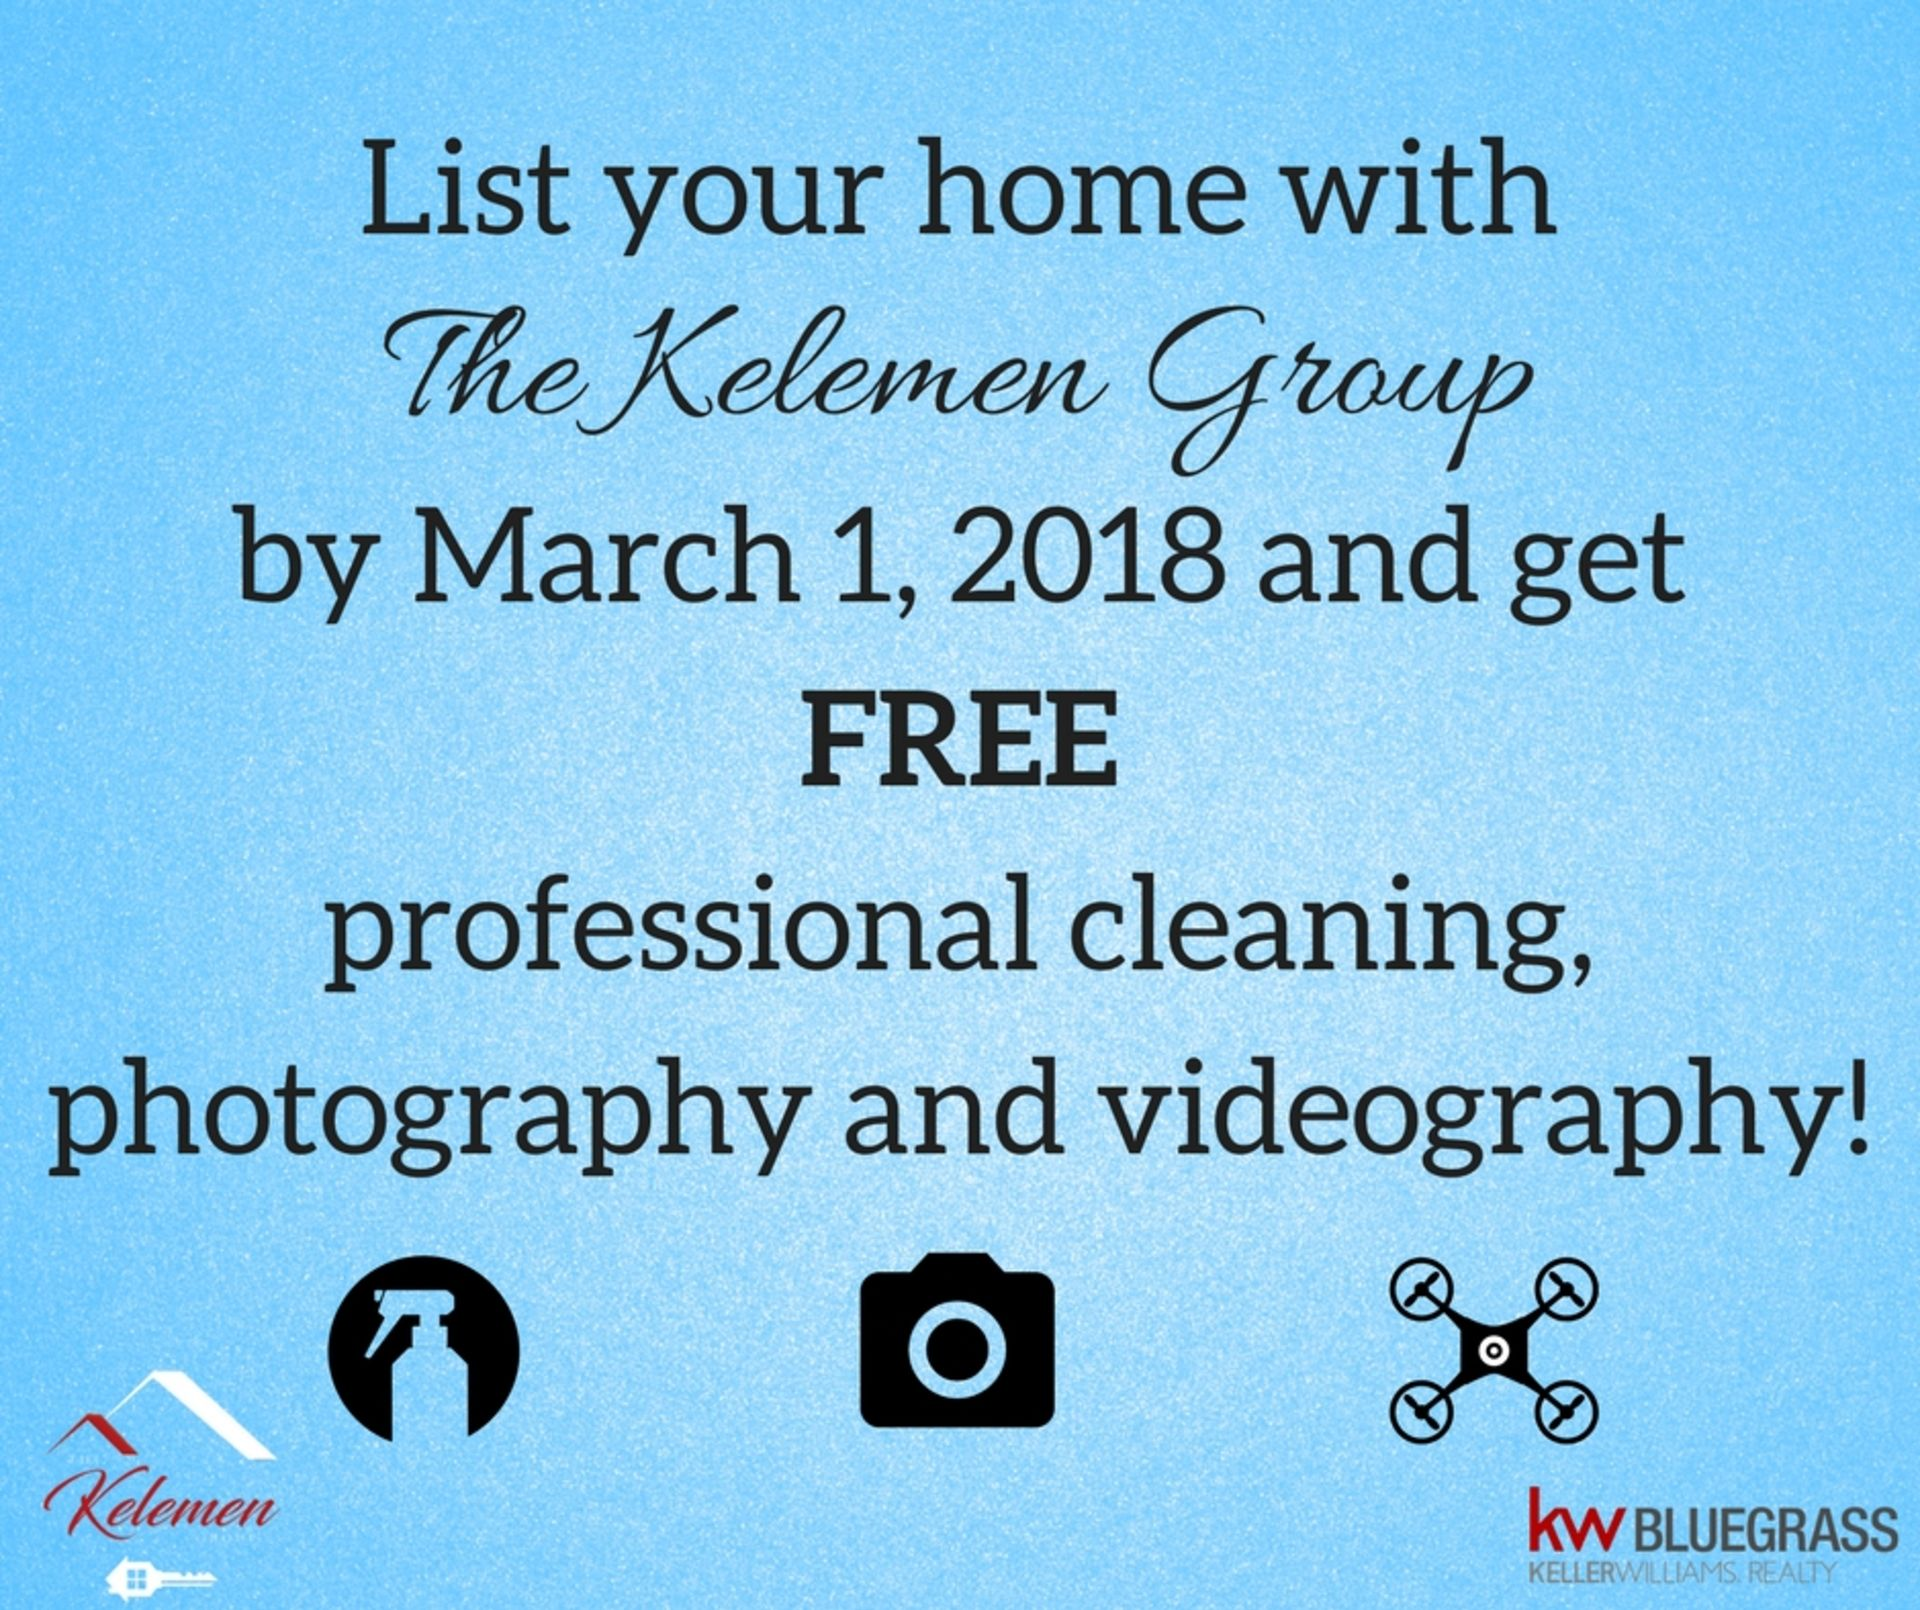 LIST YOUR HOME BY MARCH 1 – FREE CLEANING, PHOTO & VIDEO